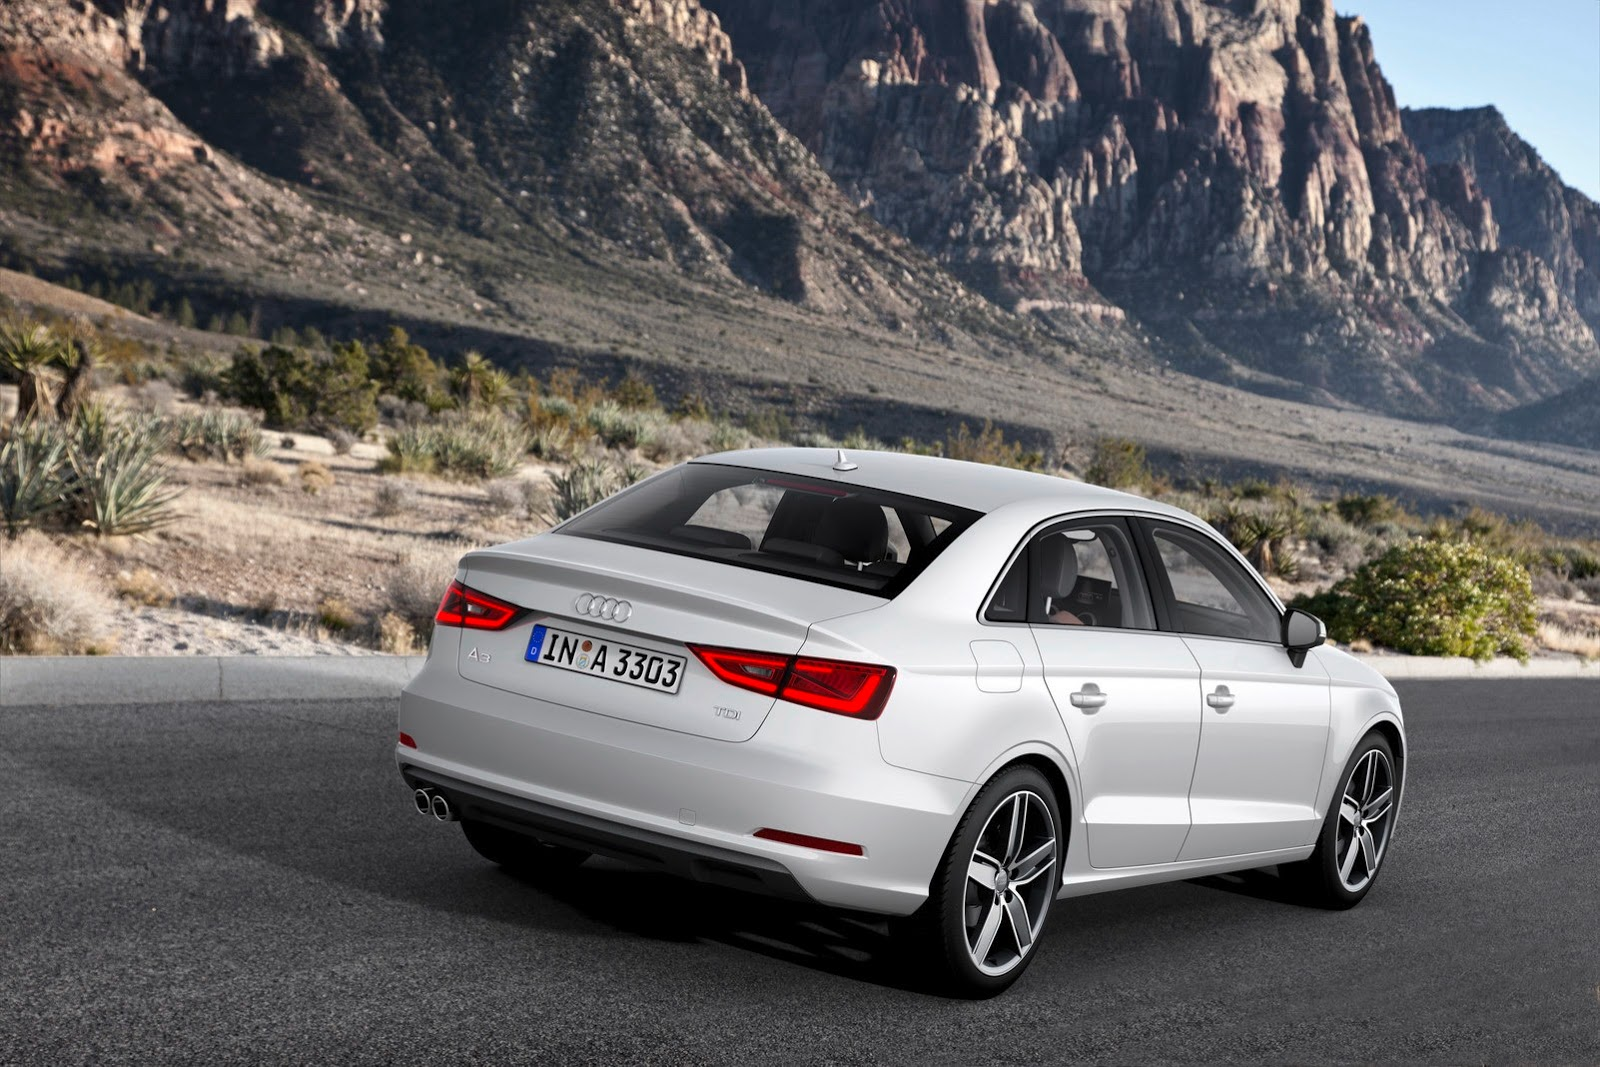 2015 audi a3 gets 2 0 tsi with quattro for 32 900. Black Bedroom Furniture Sets. Home Design Ideas